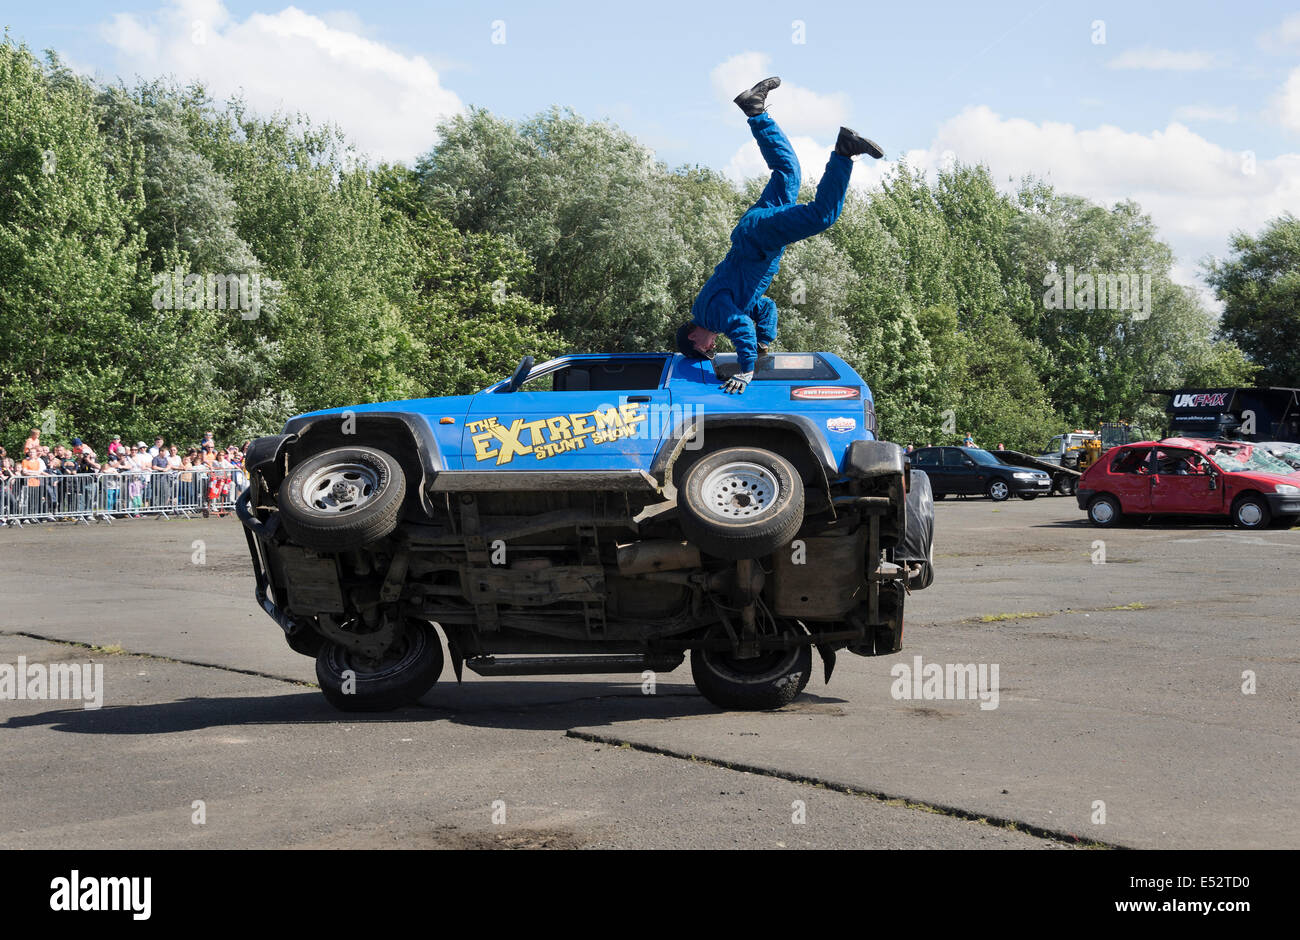 Stunt driving on two wheels with passenger doing headstand. - Stock Image